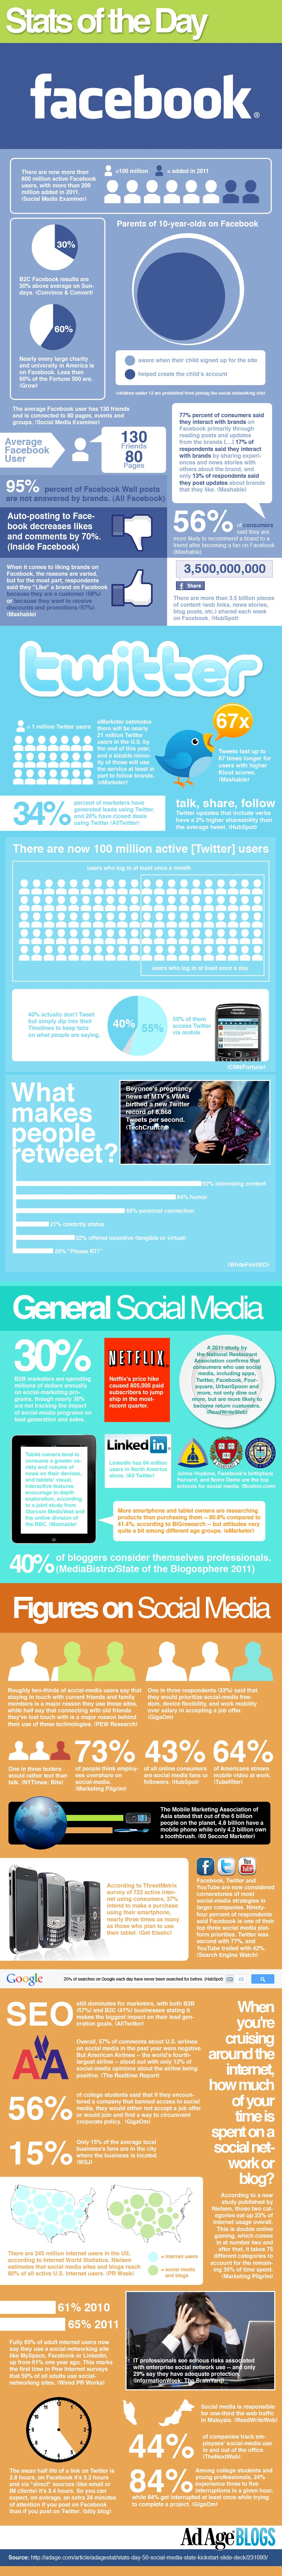 Social Media Statistics 2011 infrographic form